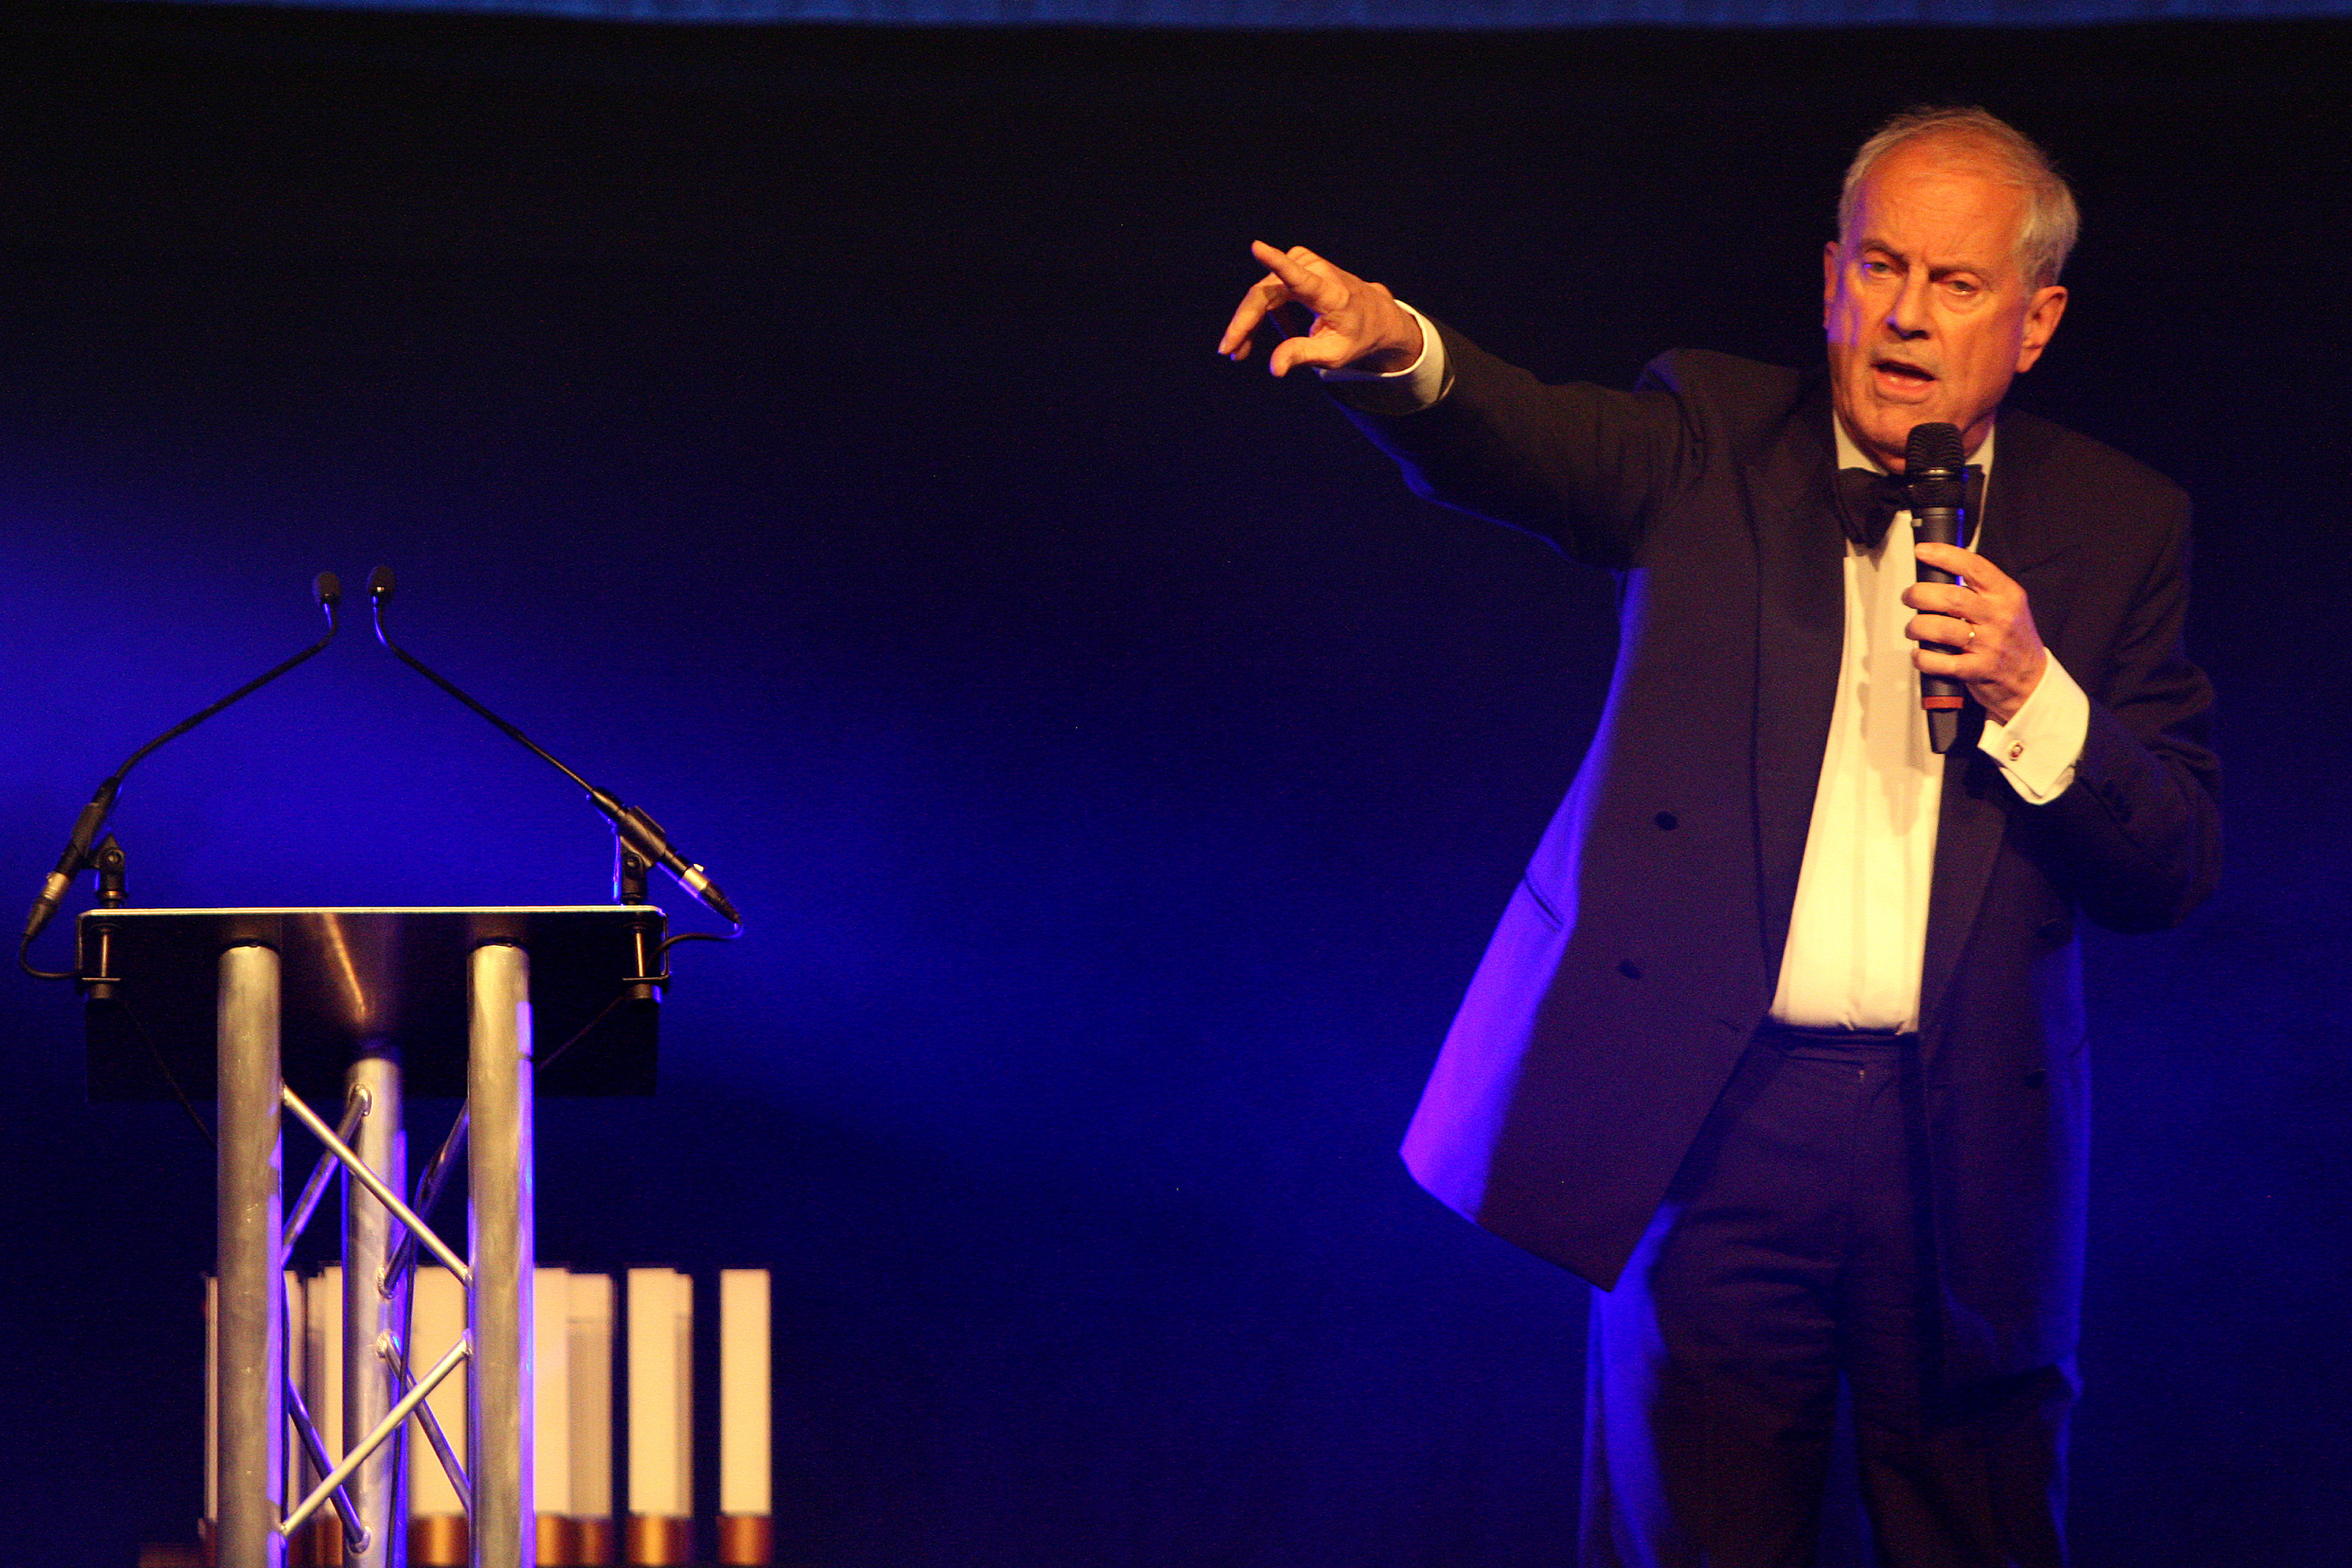 Gyles Brandreth is returning as host for the 2017 Courier Business Awards.